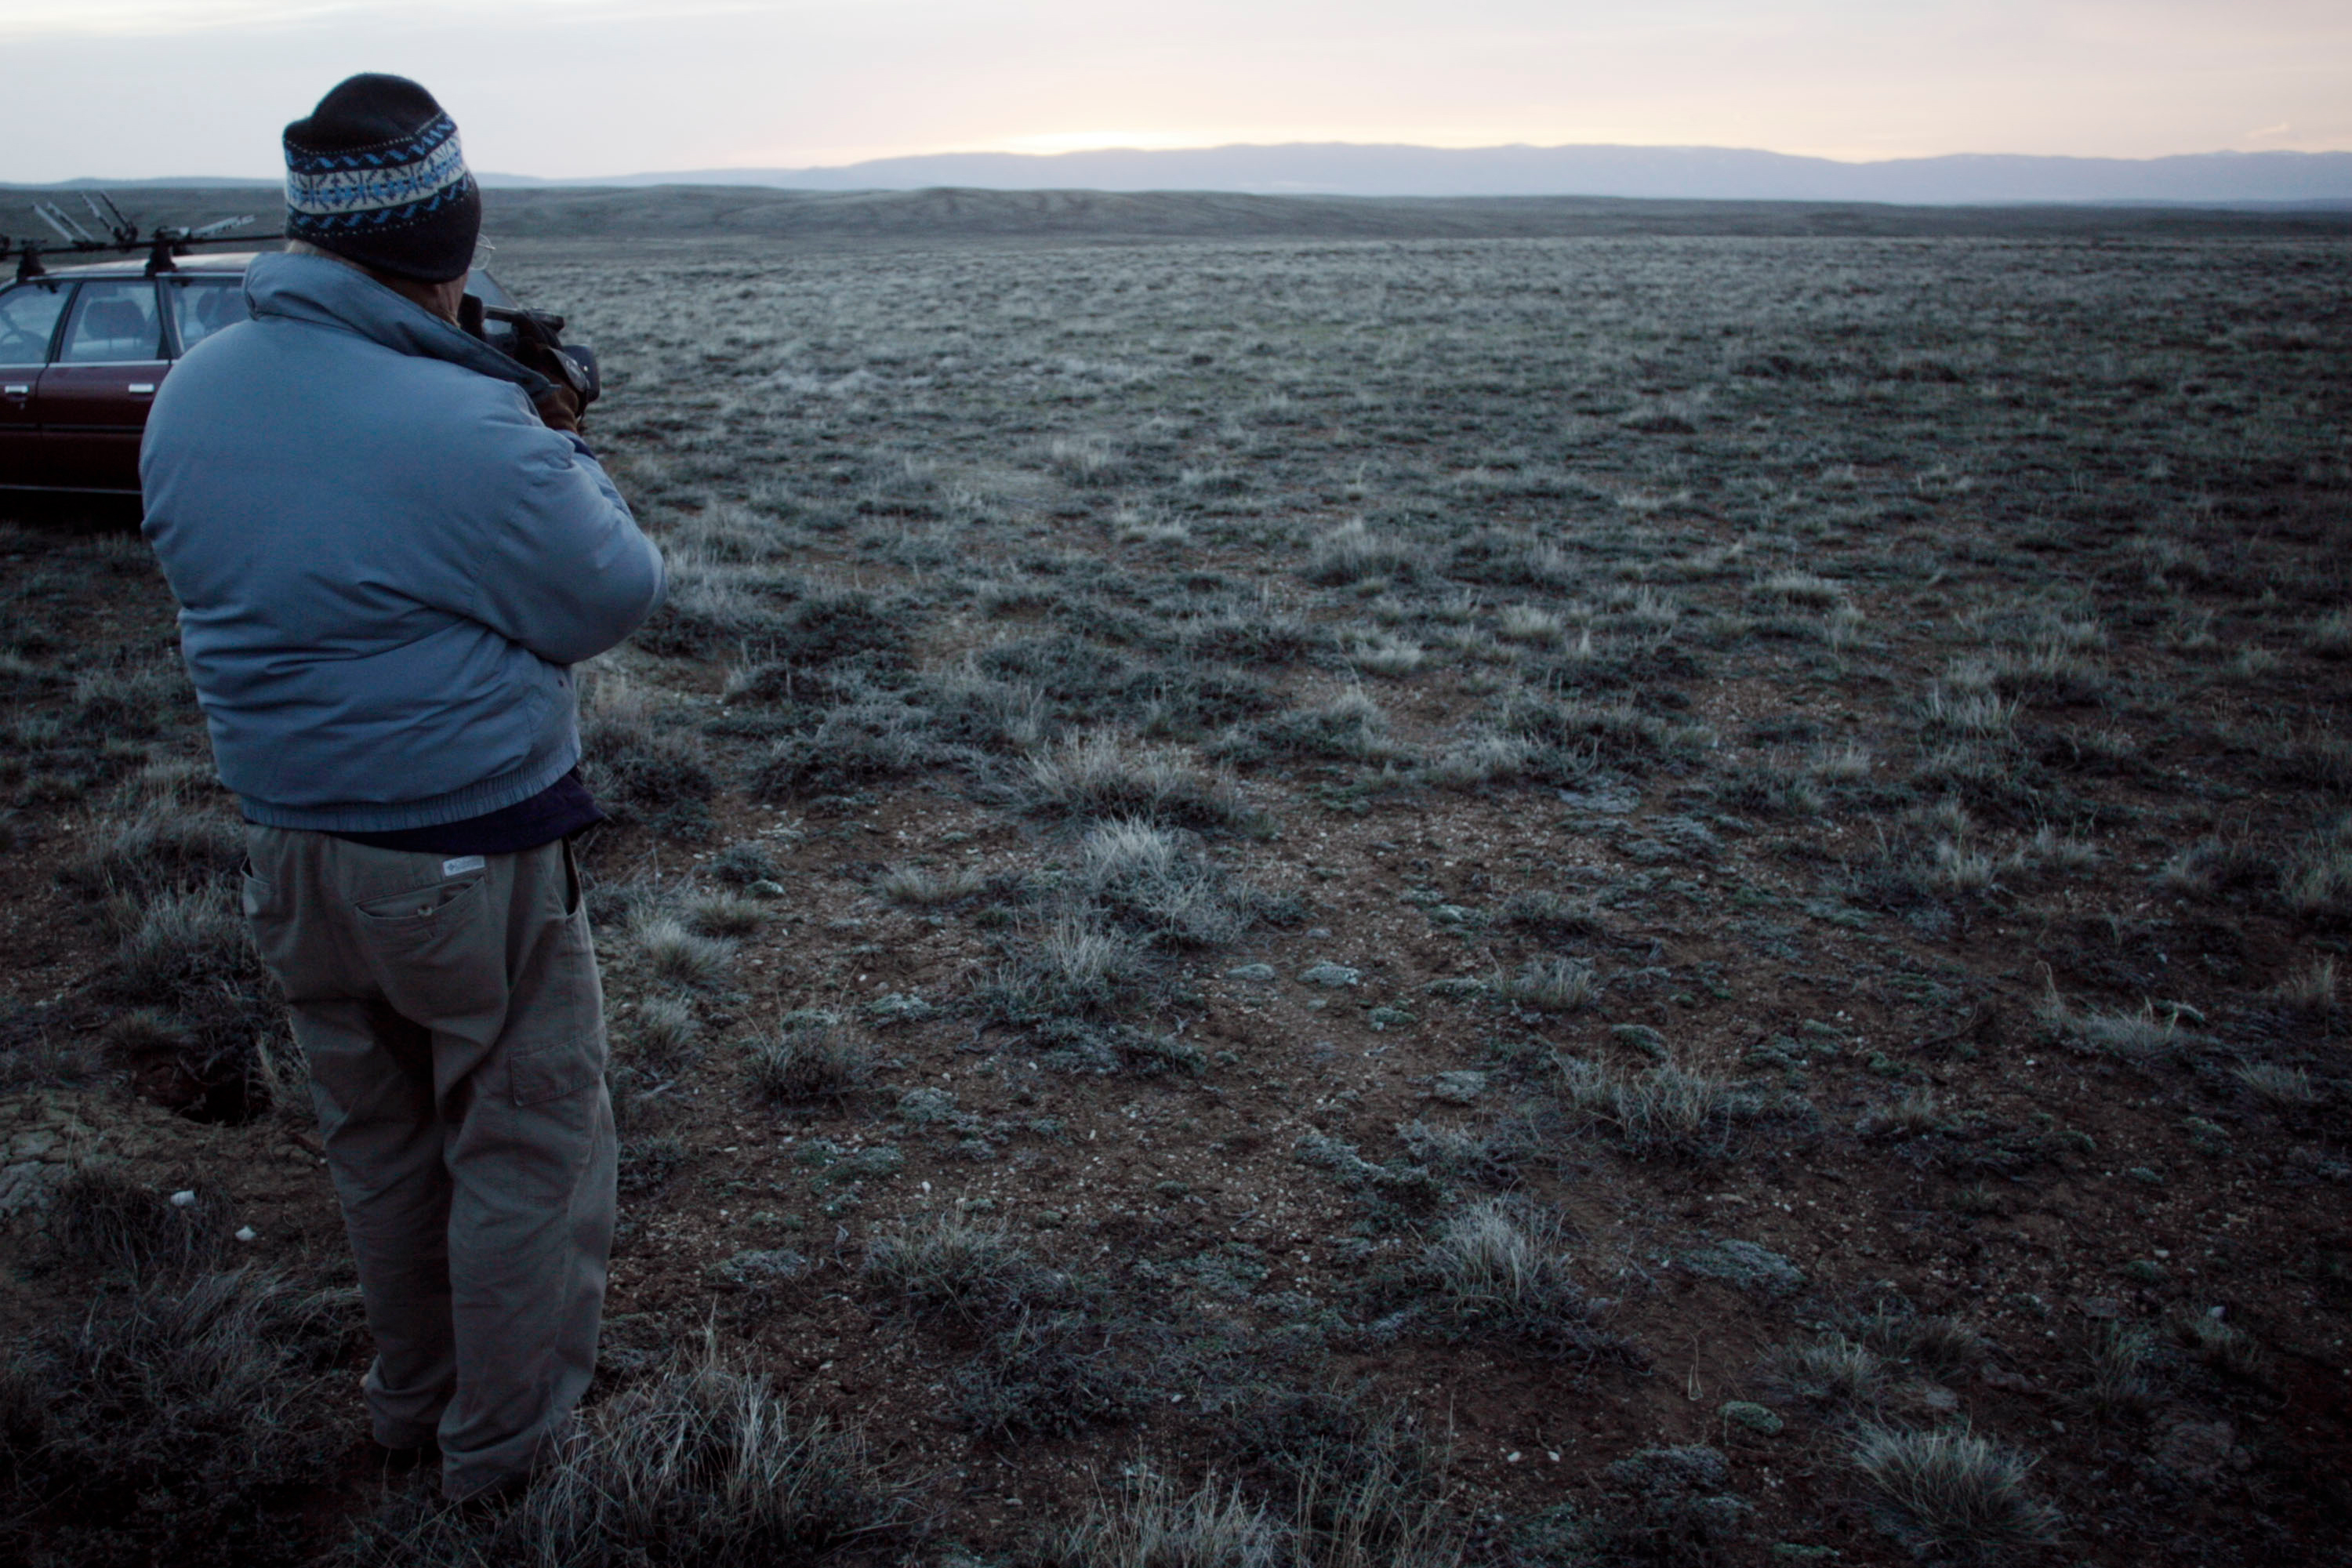 An unidentified bird watcher emerges from a blind to watch the sun rise over the sagebrush where the greater sage grouse perform their annual mating ritual near the North Park community of Walden, Colo., April 21, 2007.